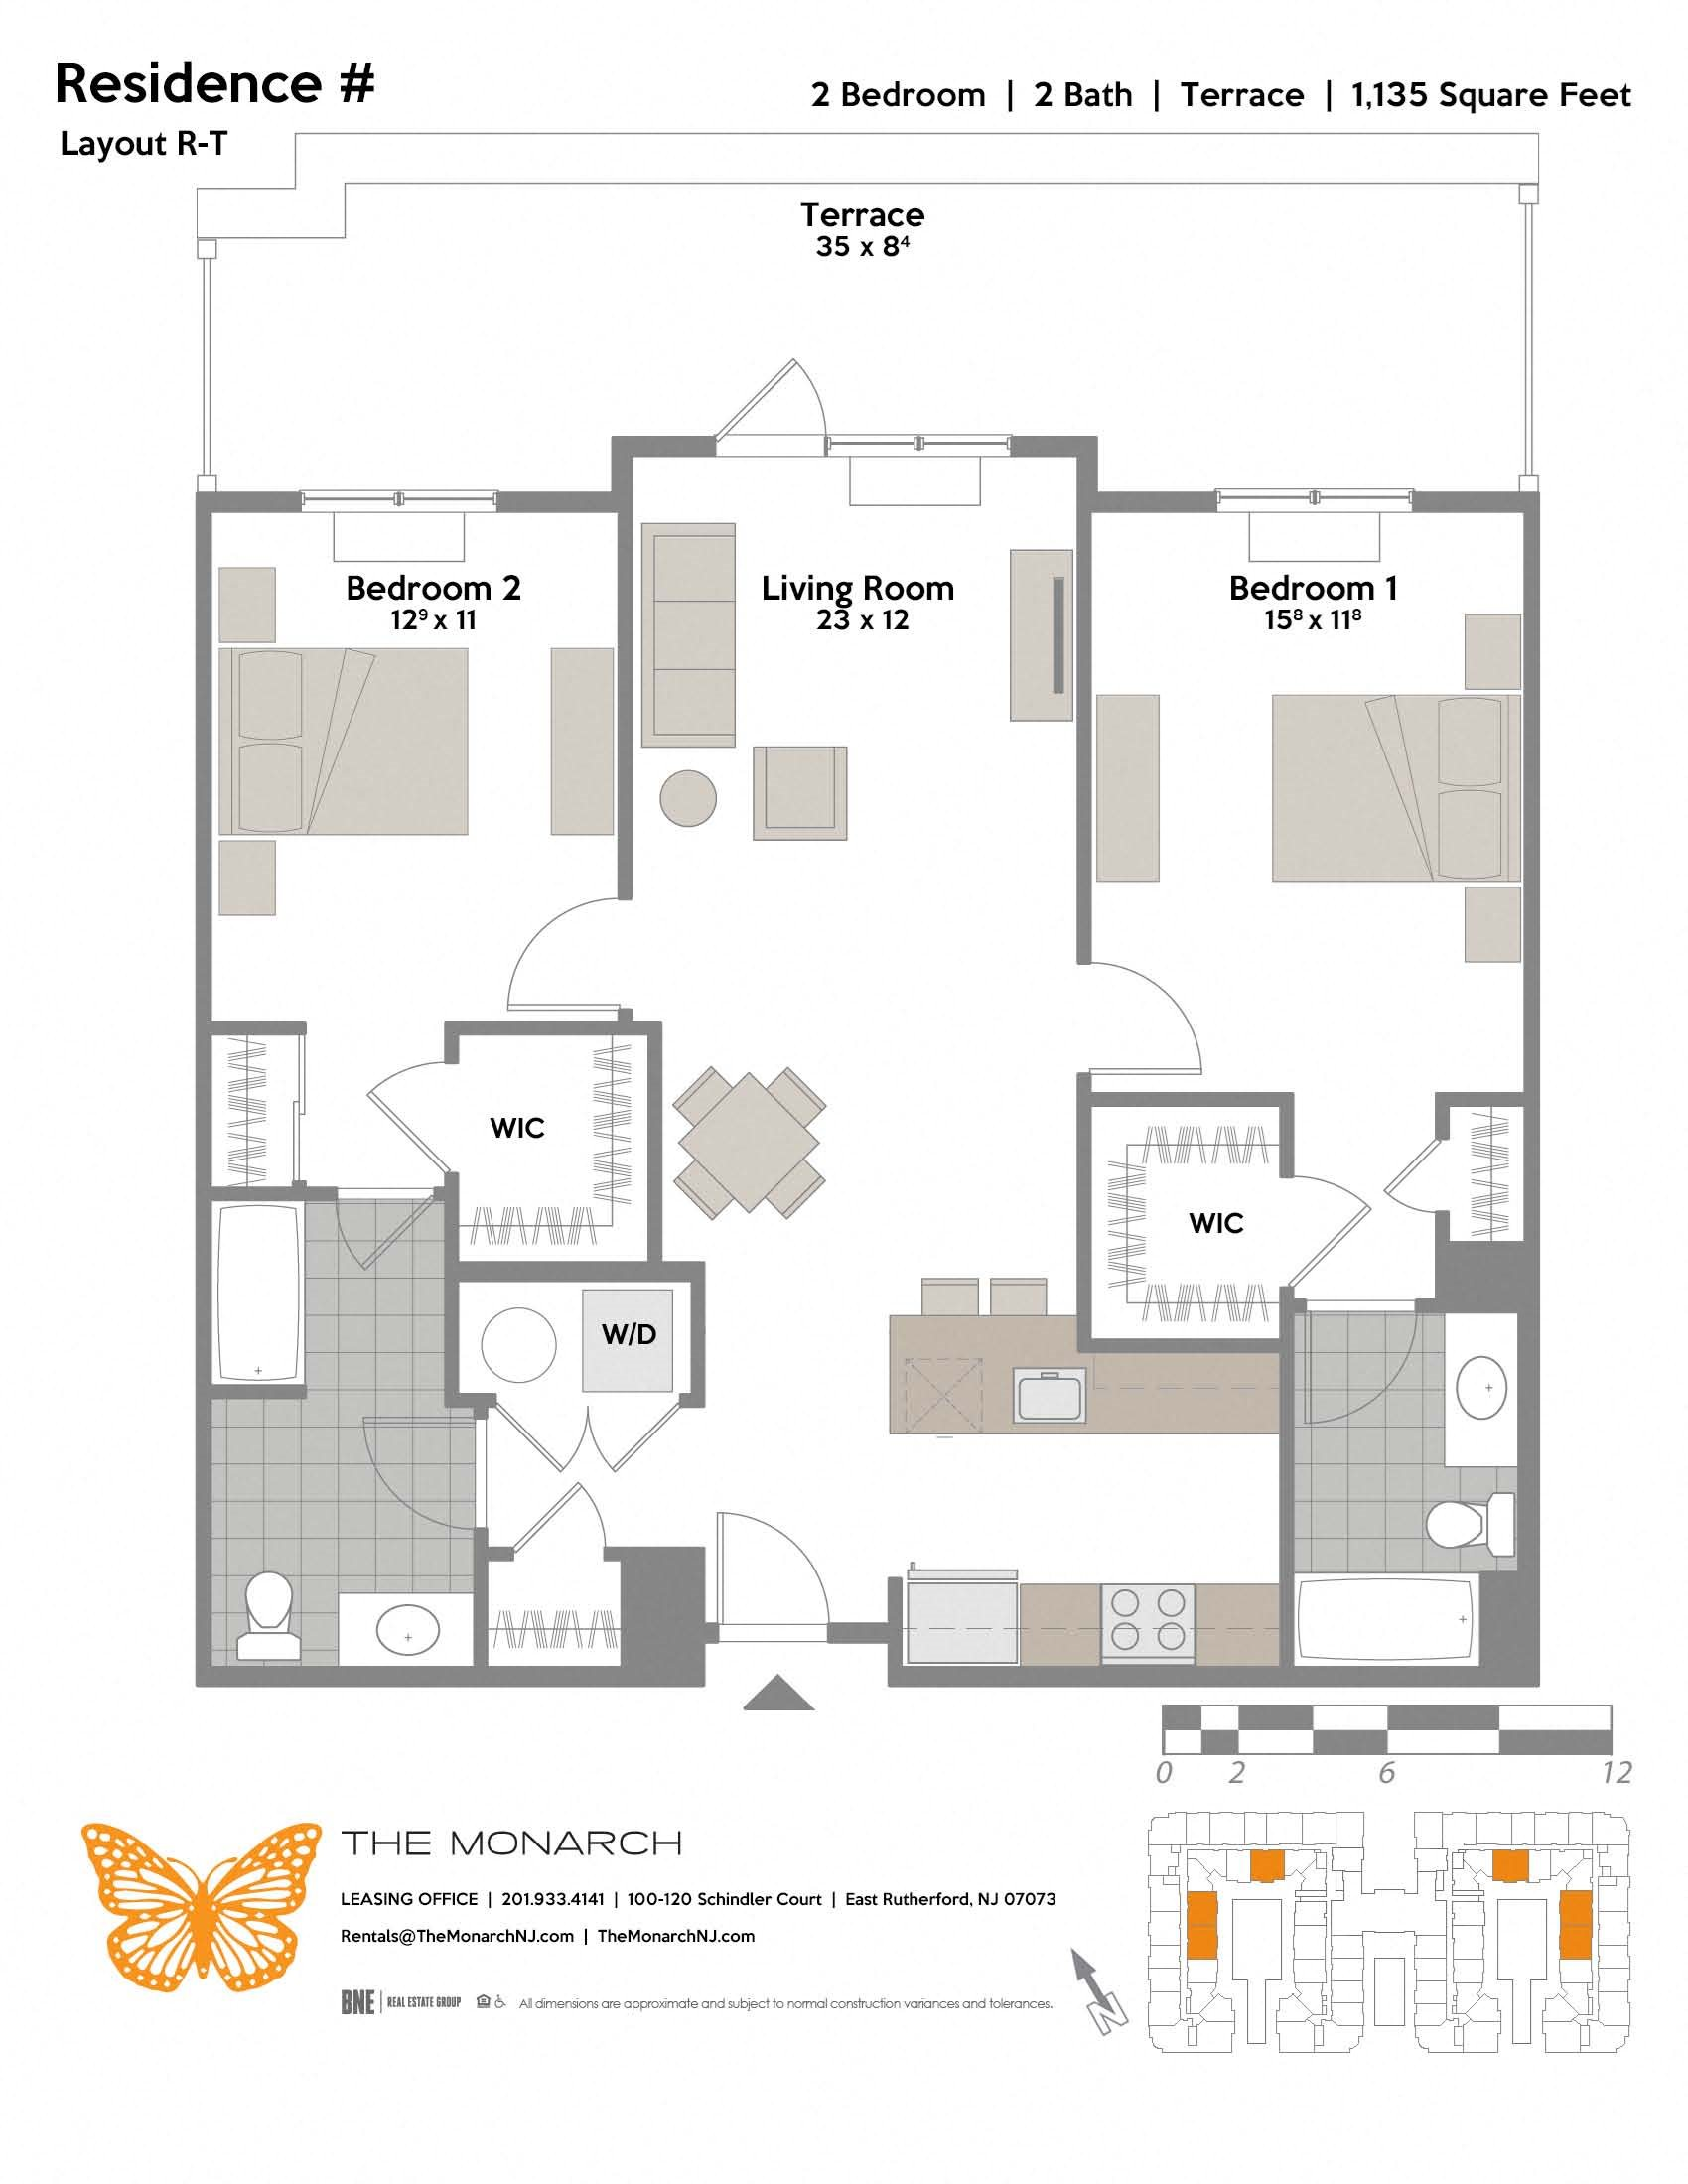 Layout R-T Floor Plan 9